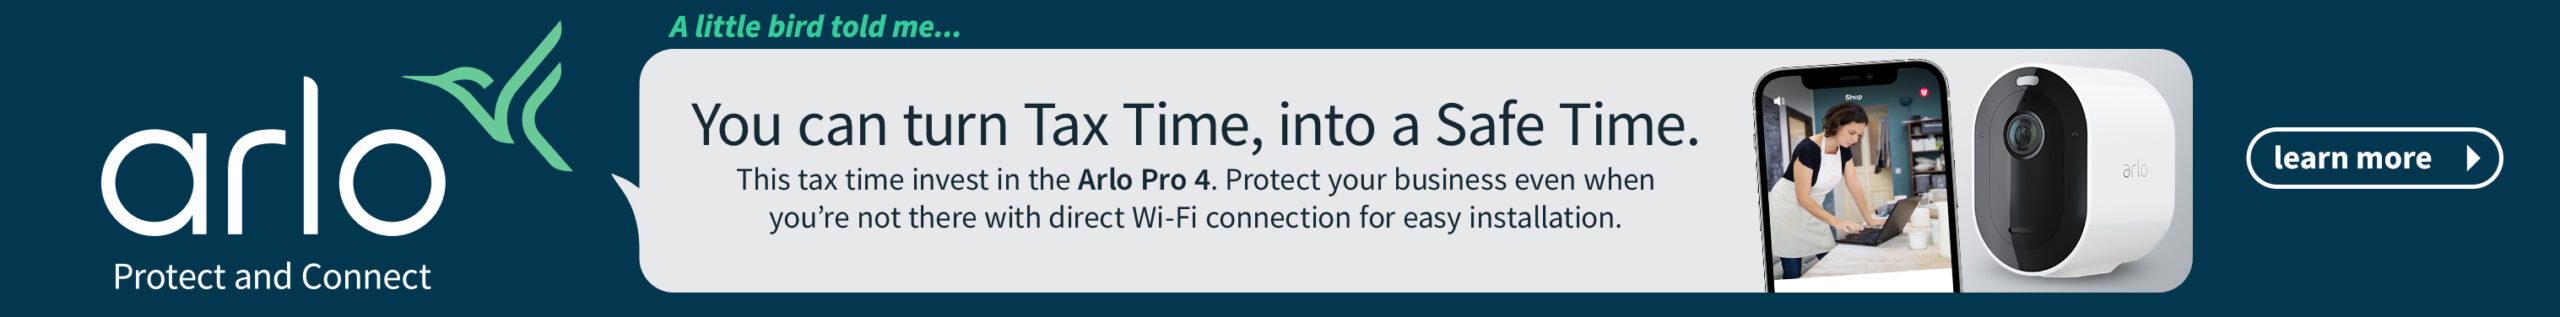 ARL0356 Arlo Pro 4 Tax Time Banner 728x90 V2 scaled PC Vendors Set To Move Into Smartphone Market